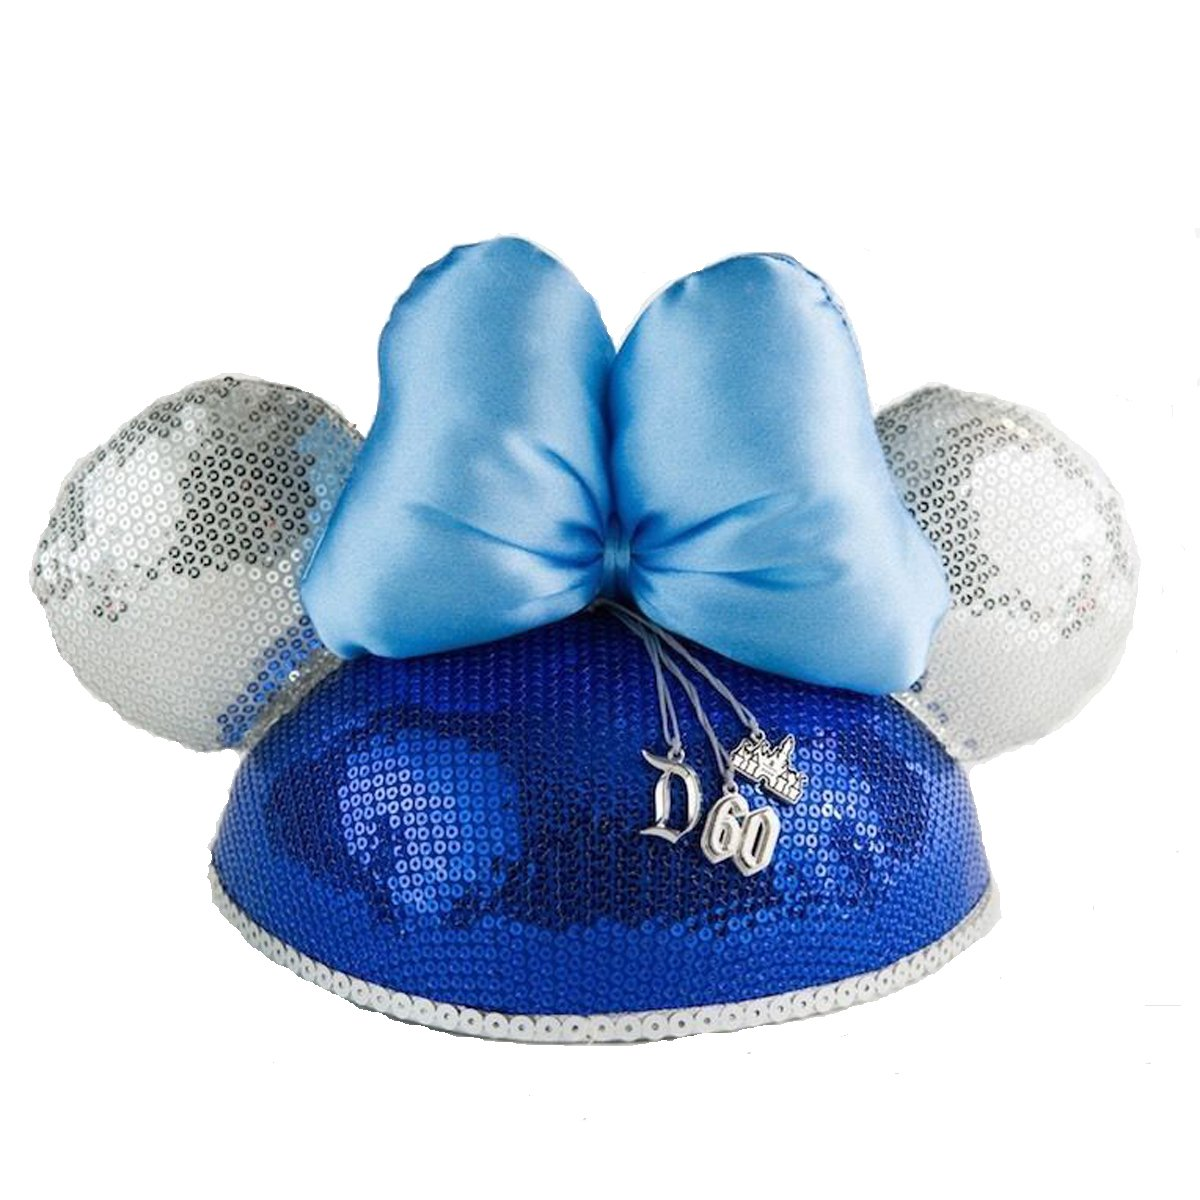 Disneyland 60th Anniversary Sequins Minnie Ear Hat with Charm by Disney Parks (Image #1)